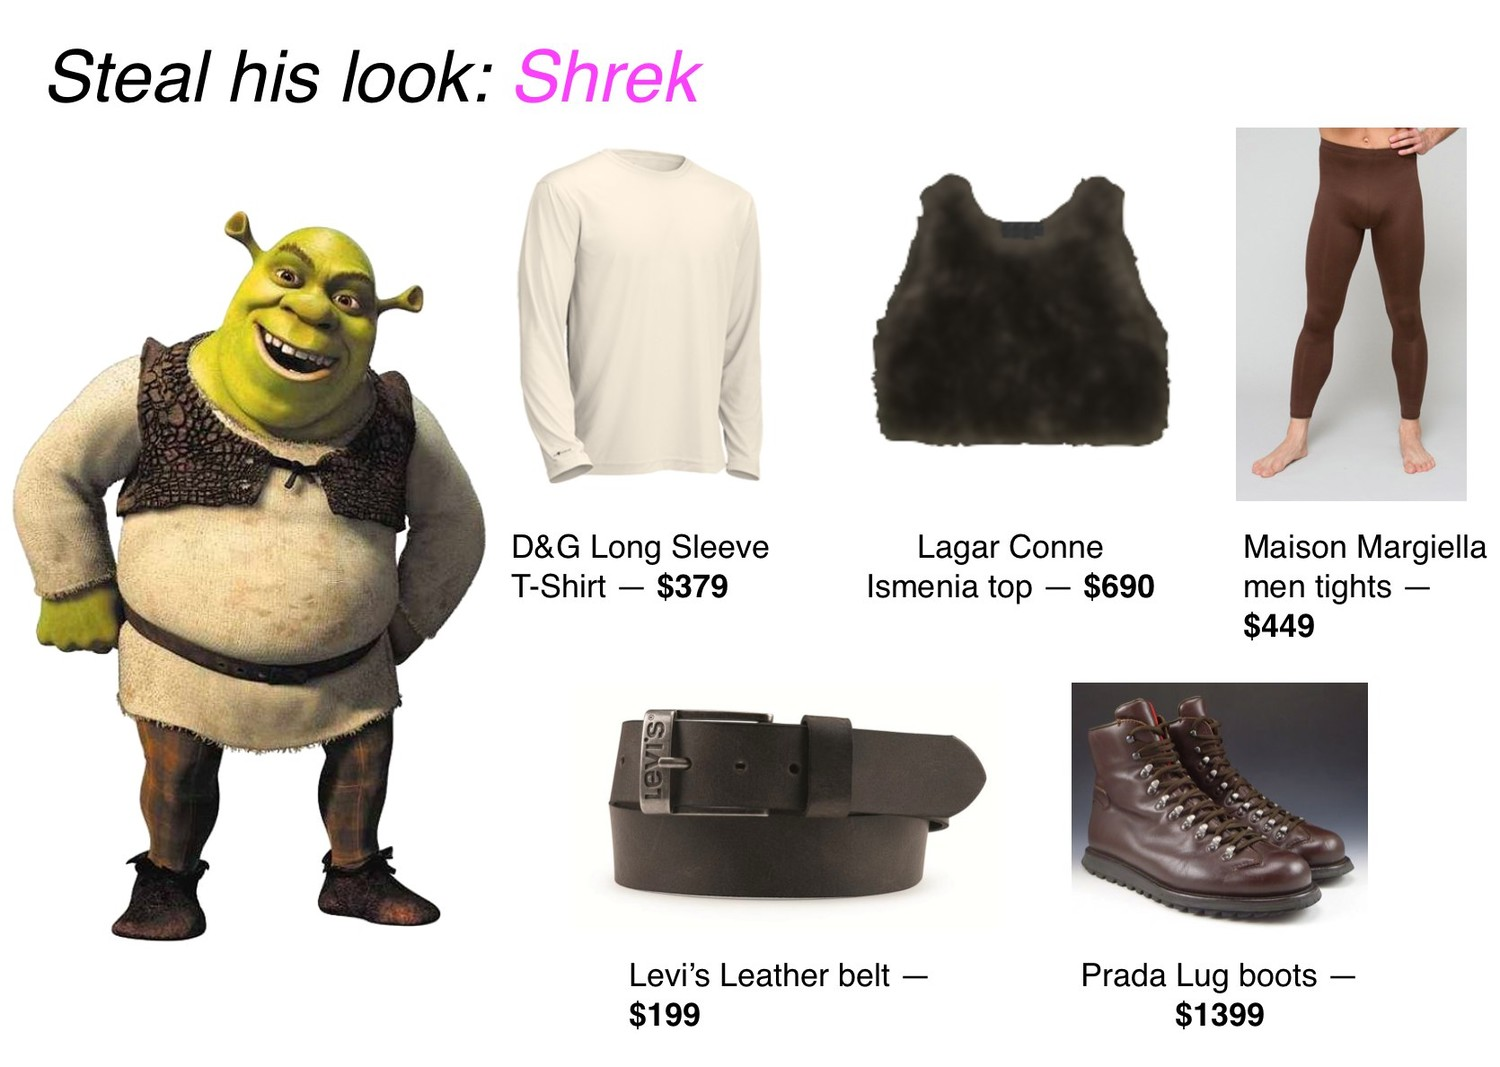 Meme Steal his look: Shrek